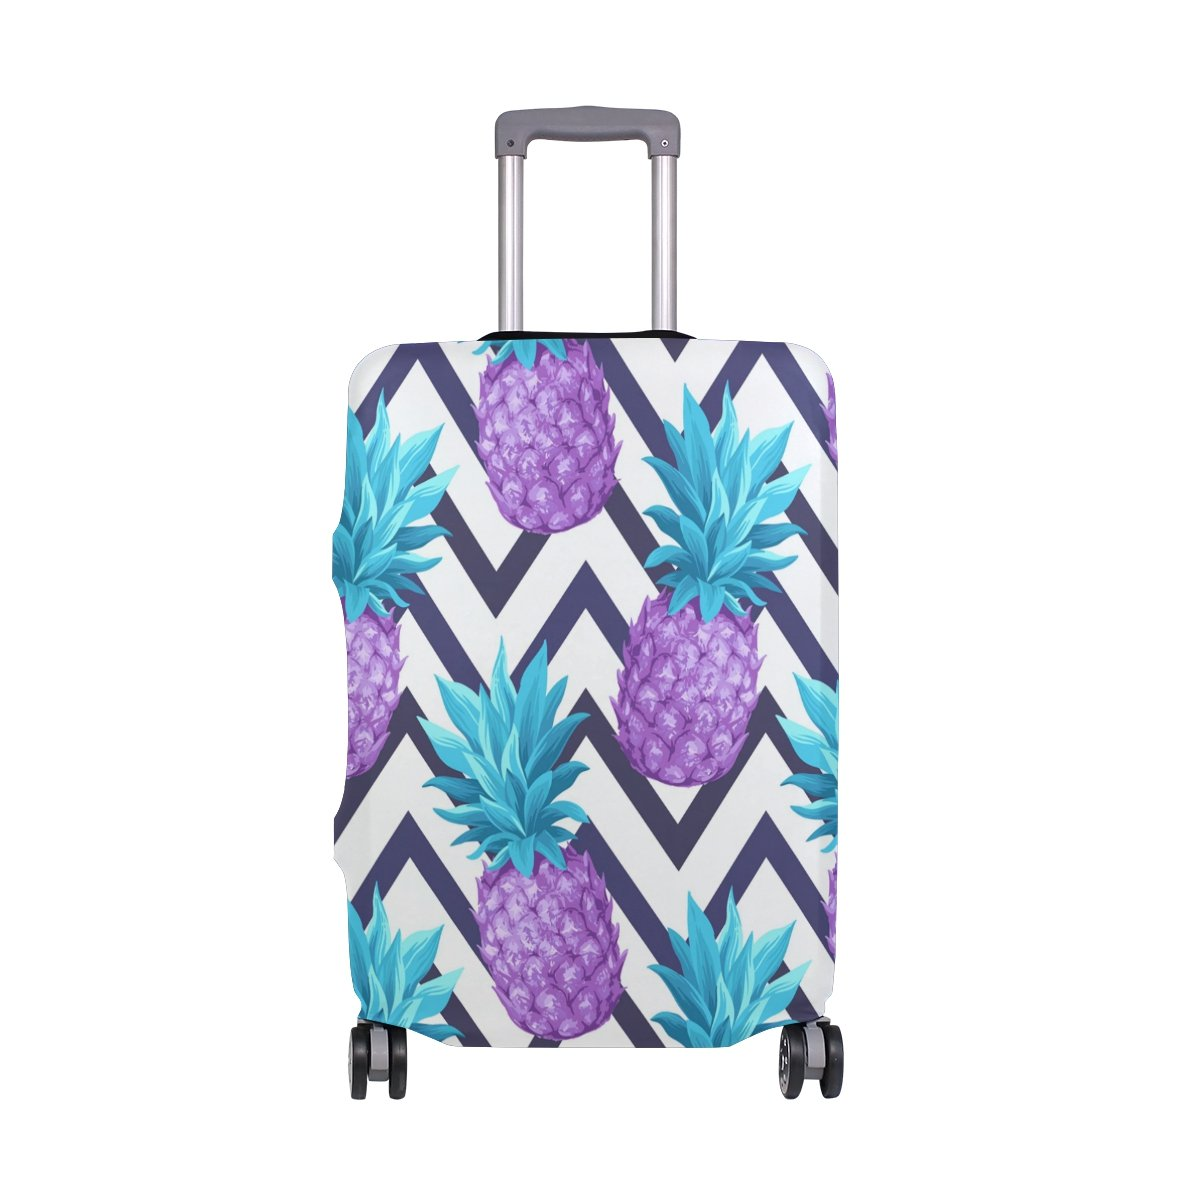 Summer Striped Pineapples Tropical Suitcase Luggage Cover Protector for Travel Kids Men Women